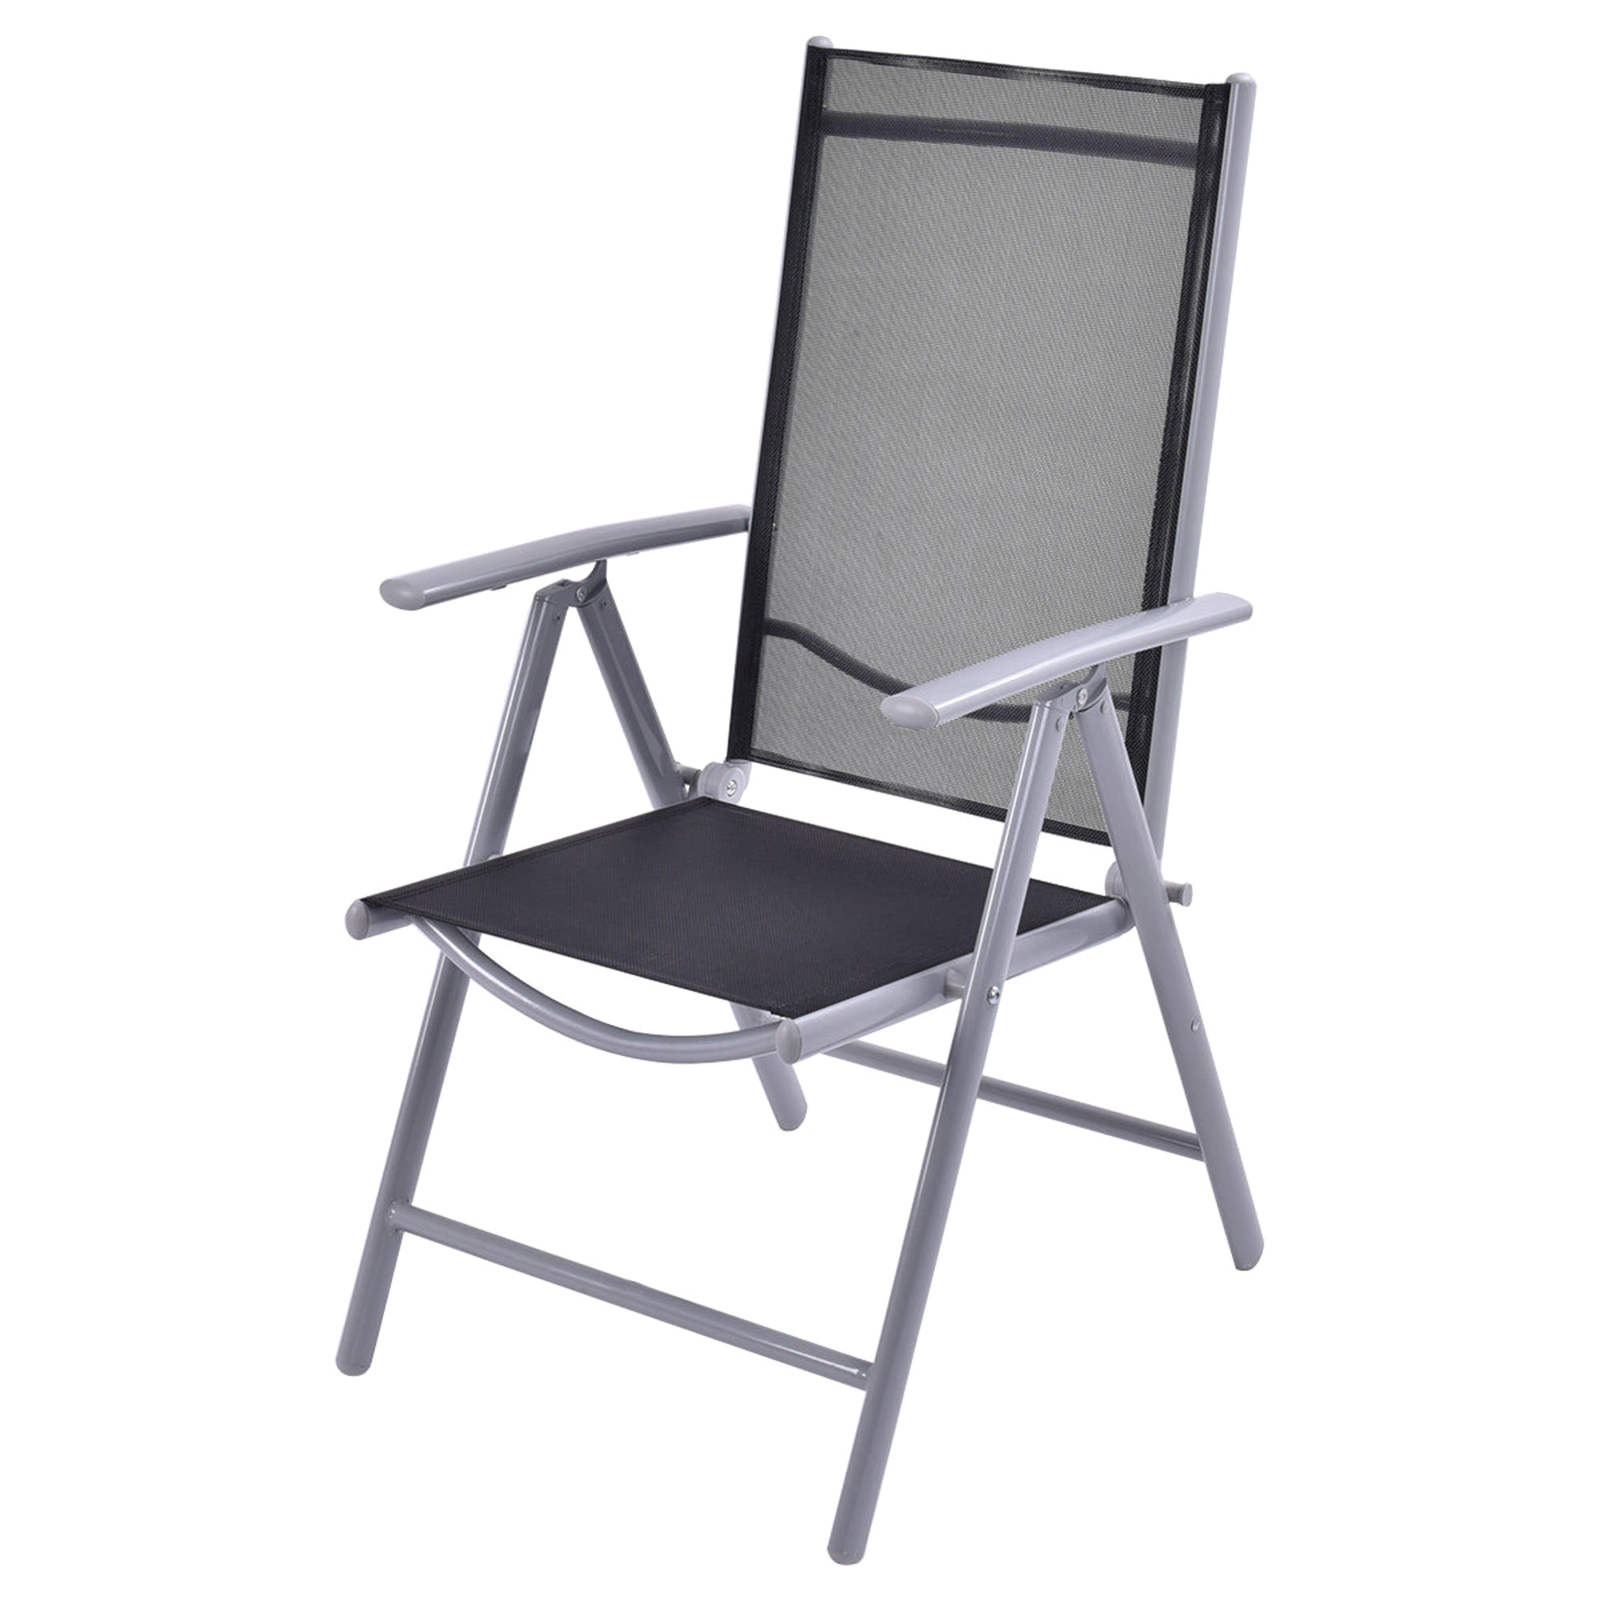 Aluminum Folding Chair Goplus 7 Position 2pc Aluminum Folding Chair Set Sears Marketplace